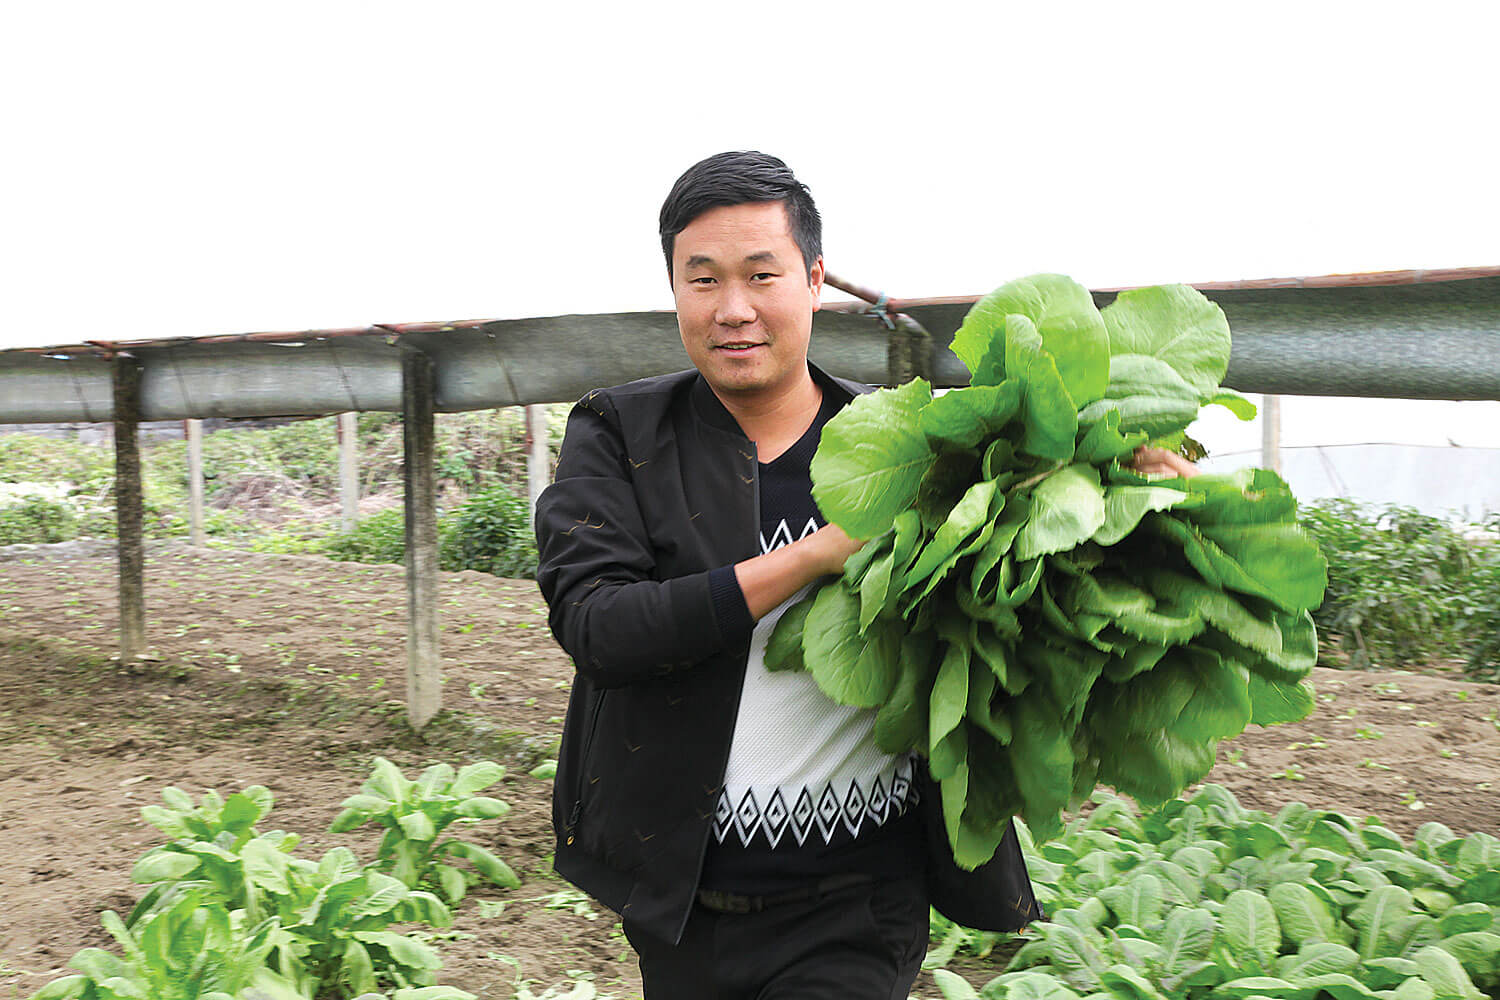 Chinese farmer strikes roots in Nepal